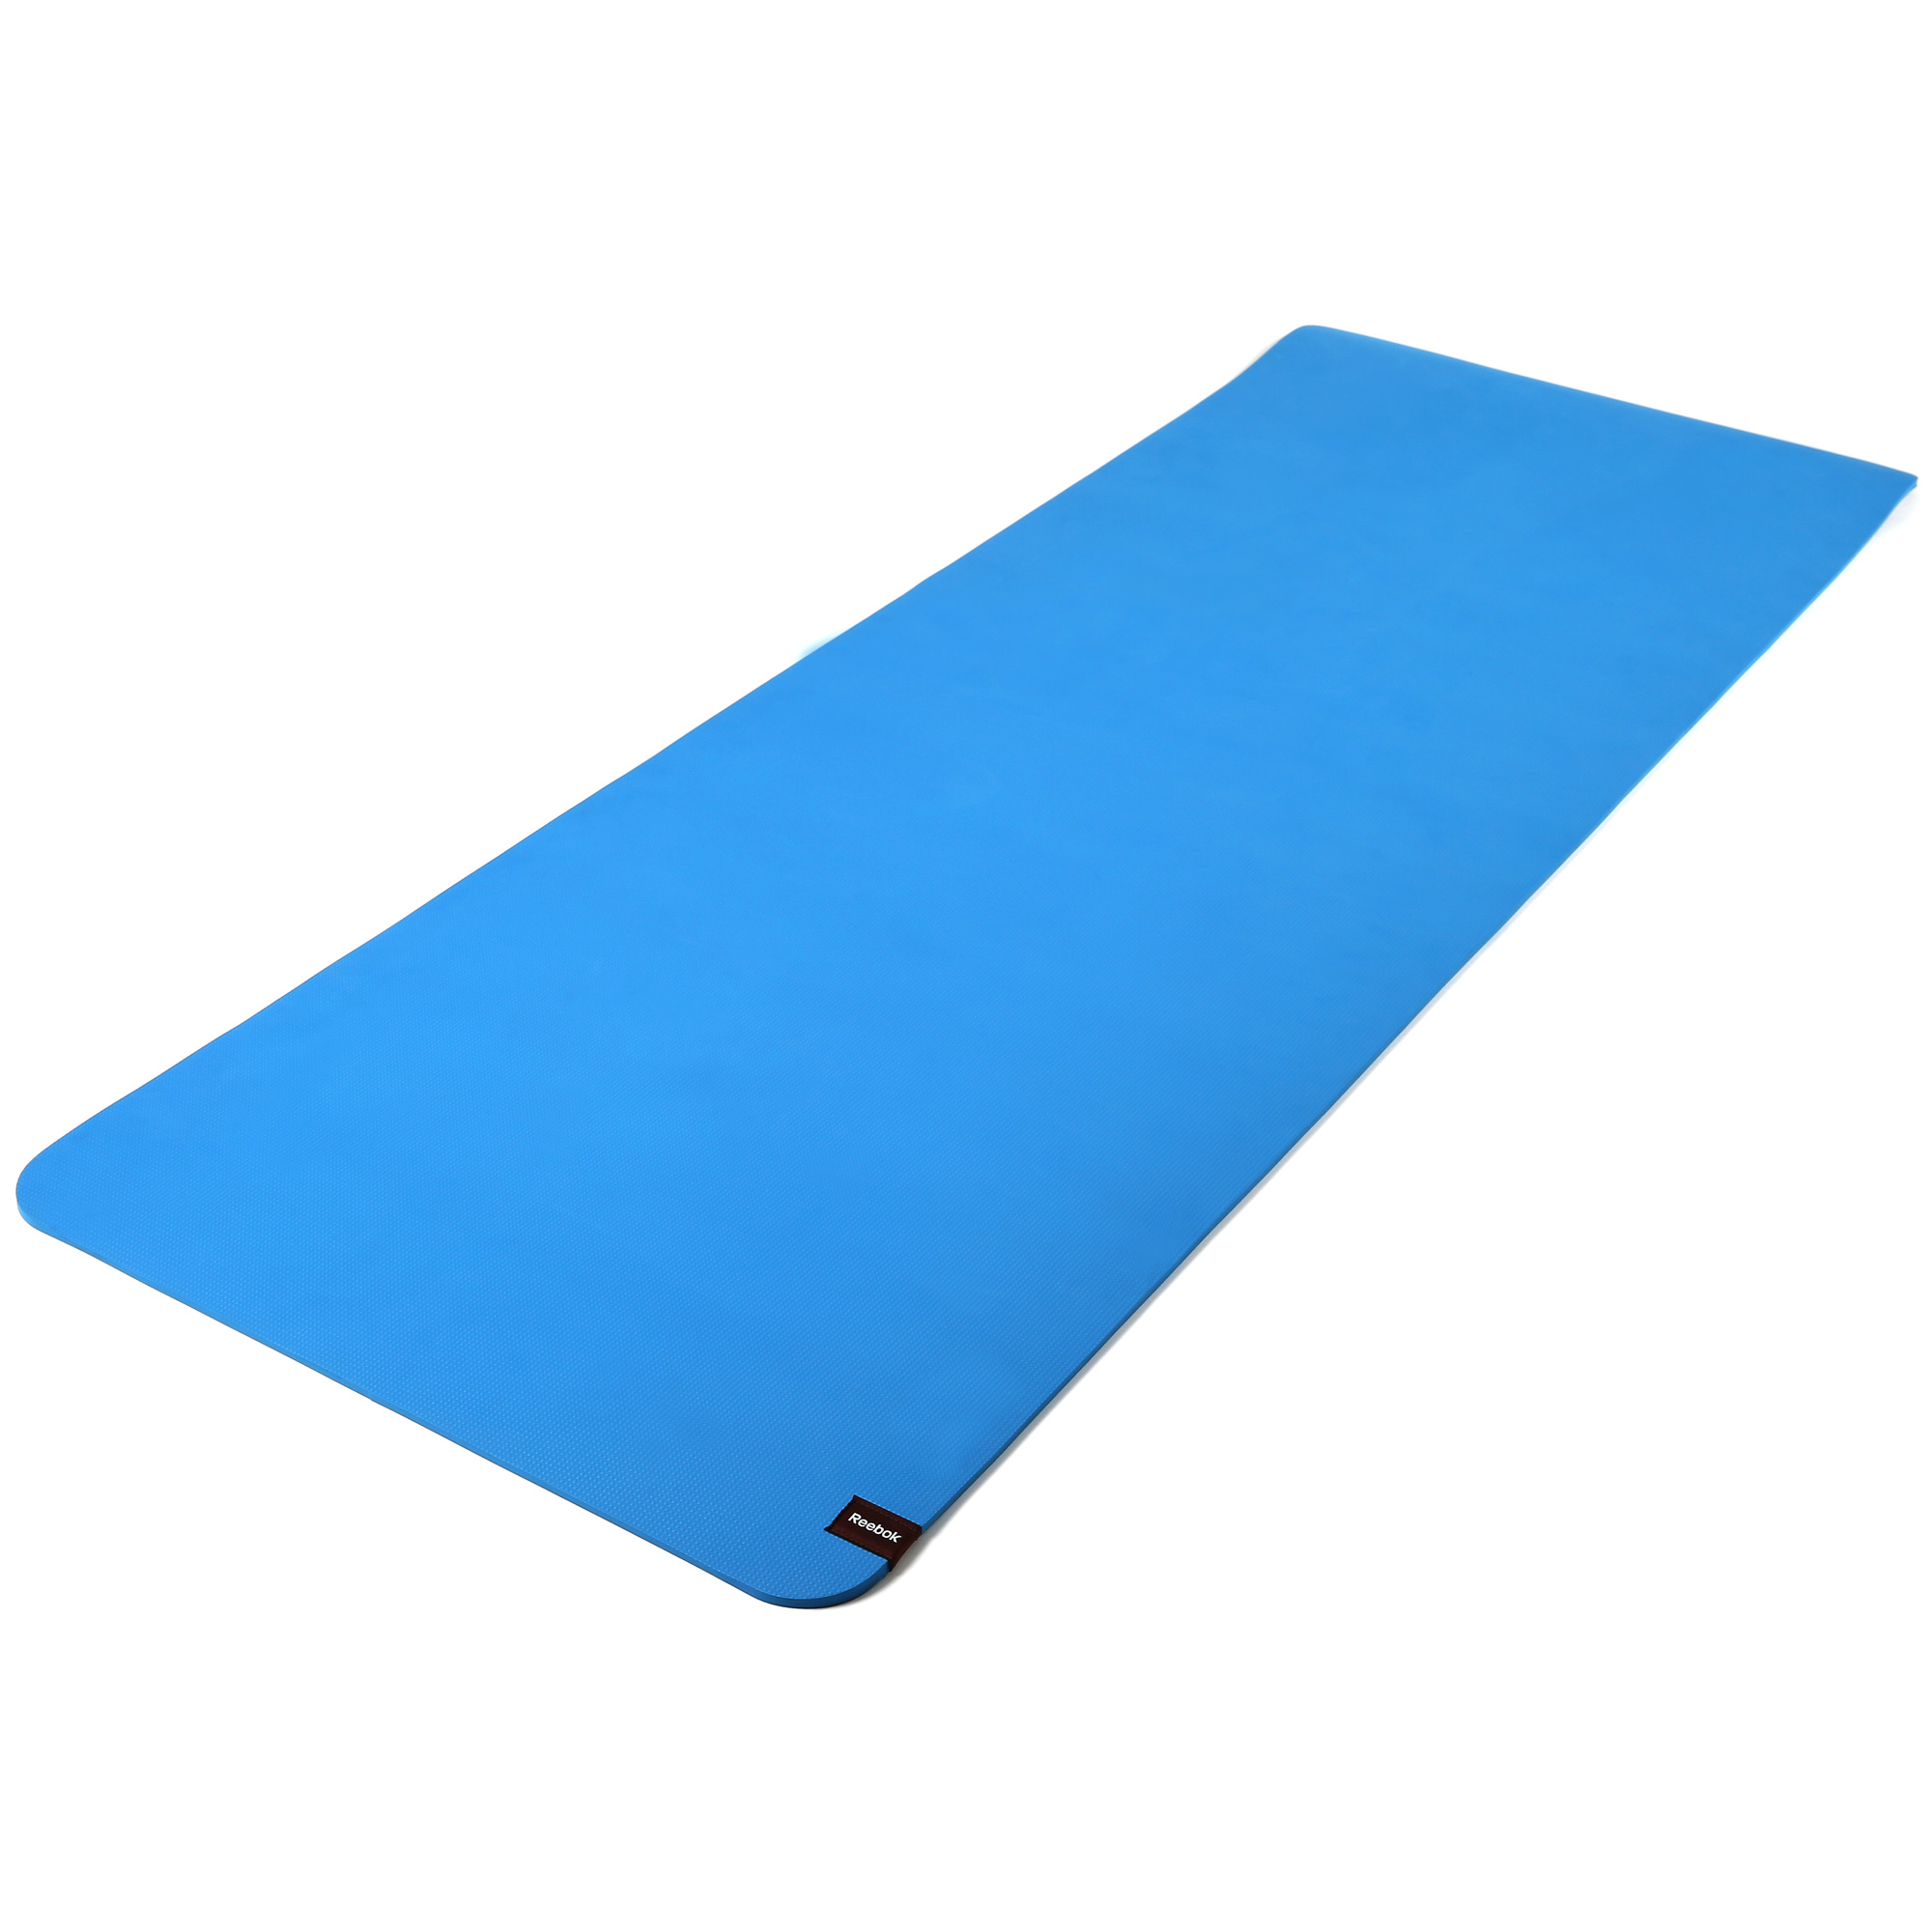 Reebok Yoga Mat Shop For Cheap Weight Training And Save